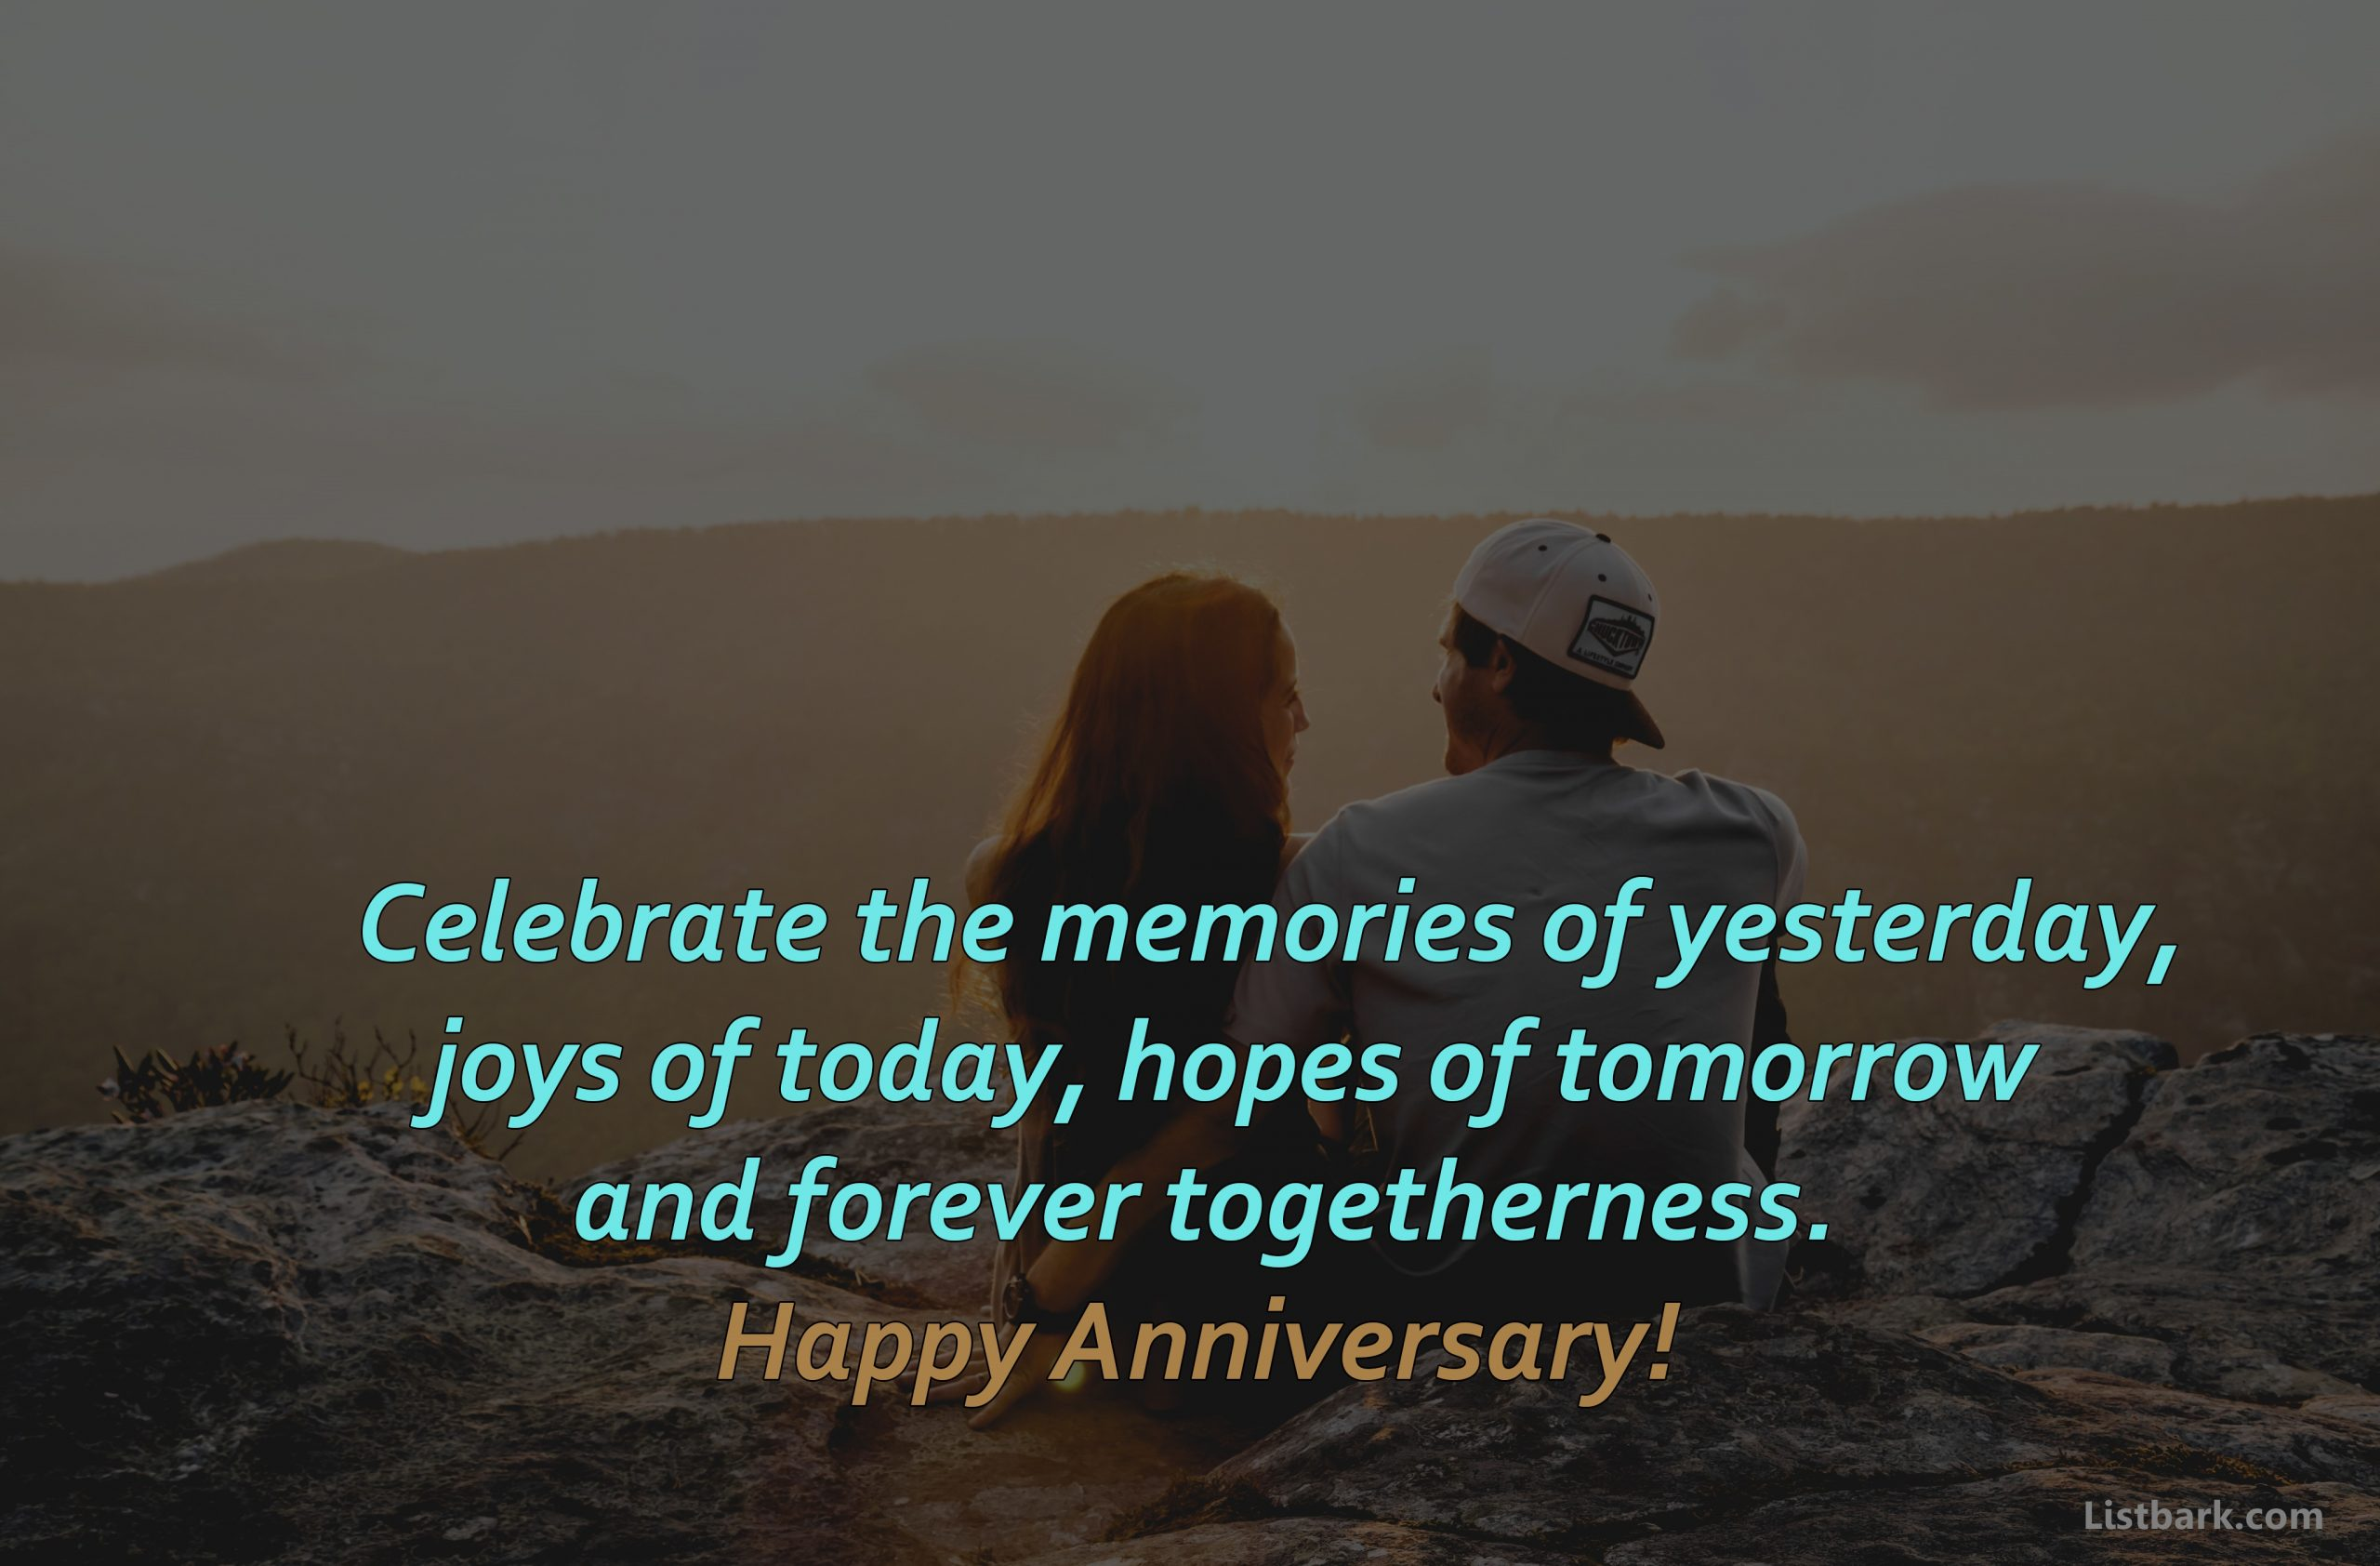 Anniversary Images Wishes